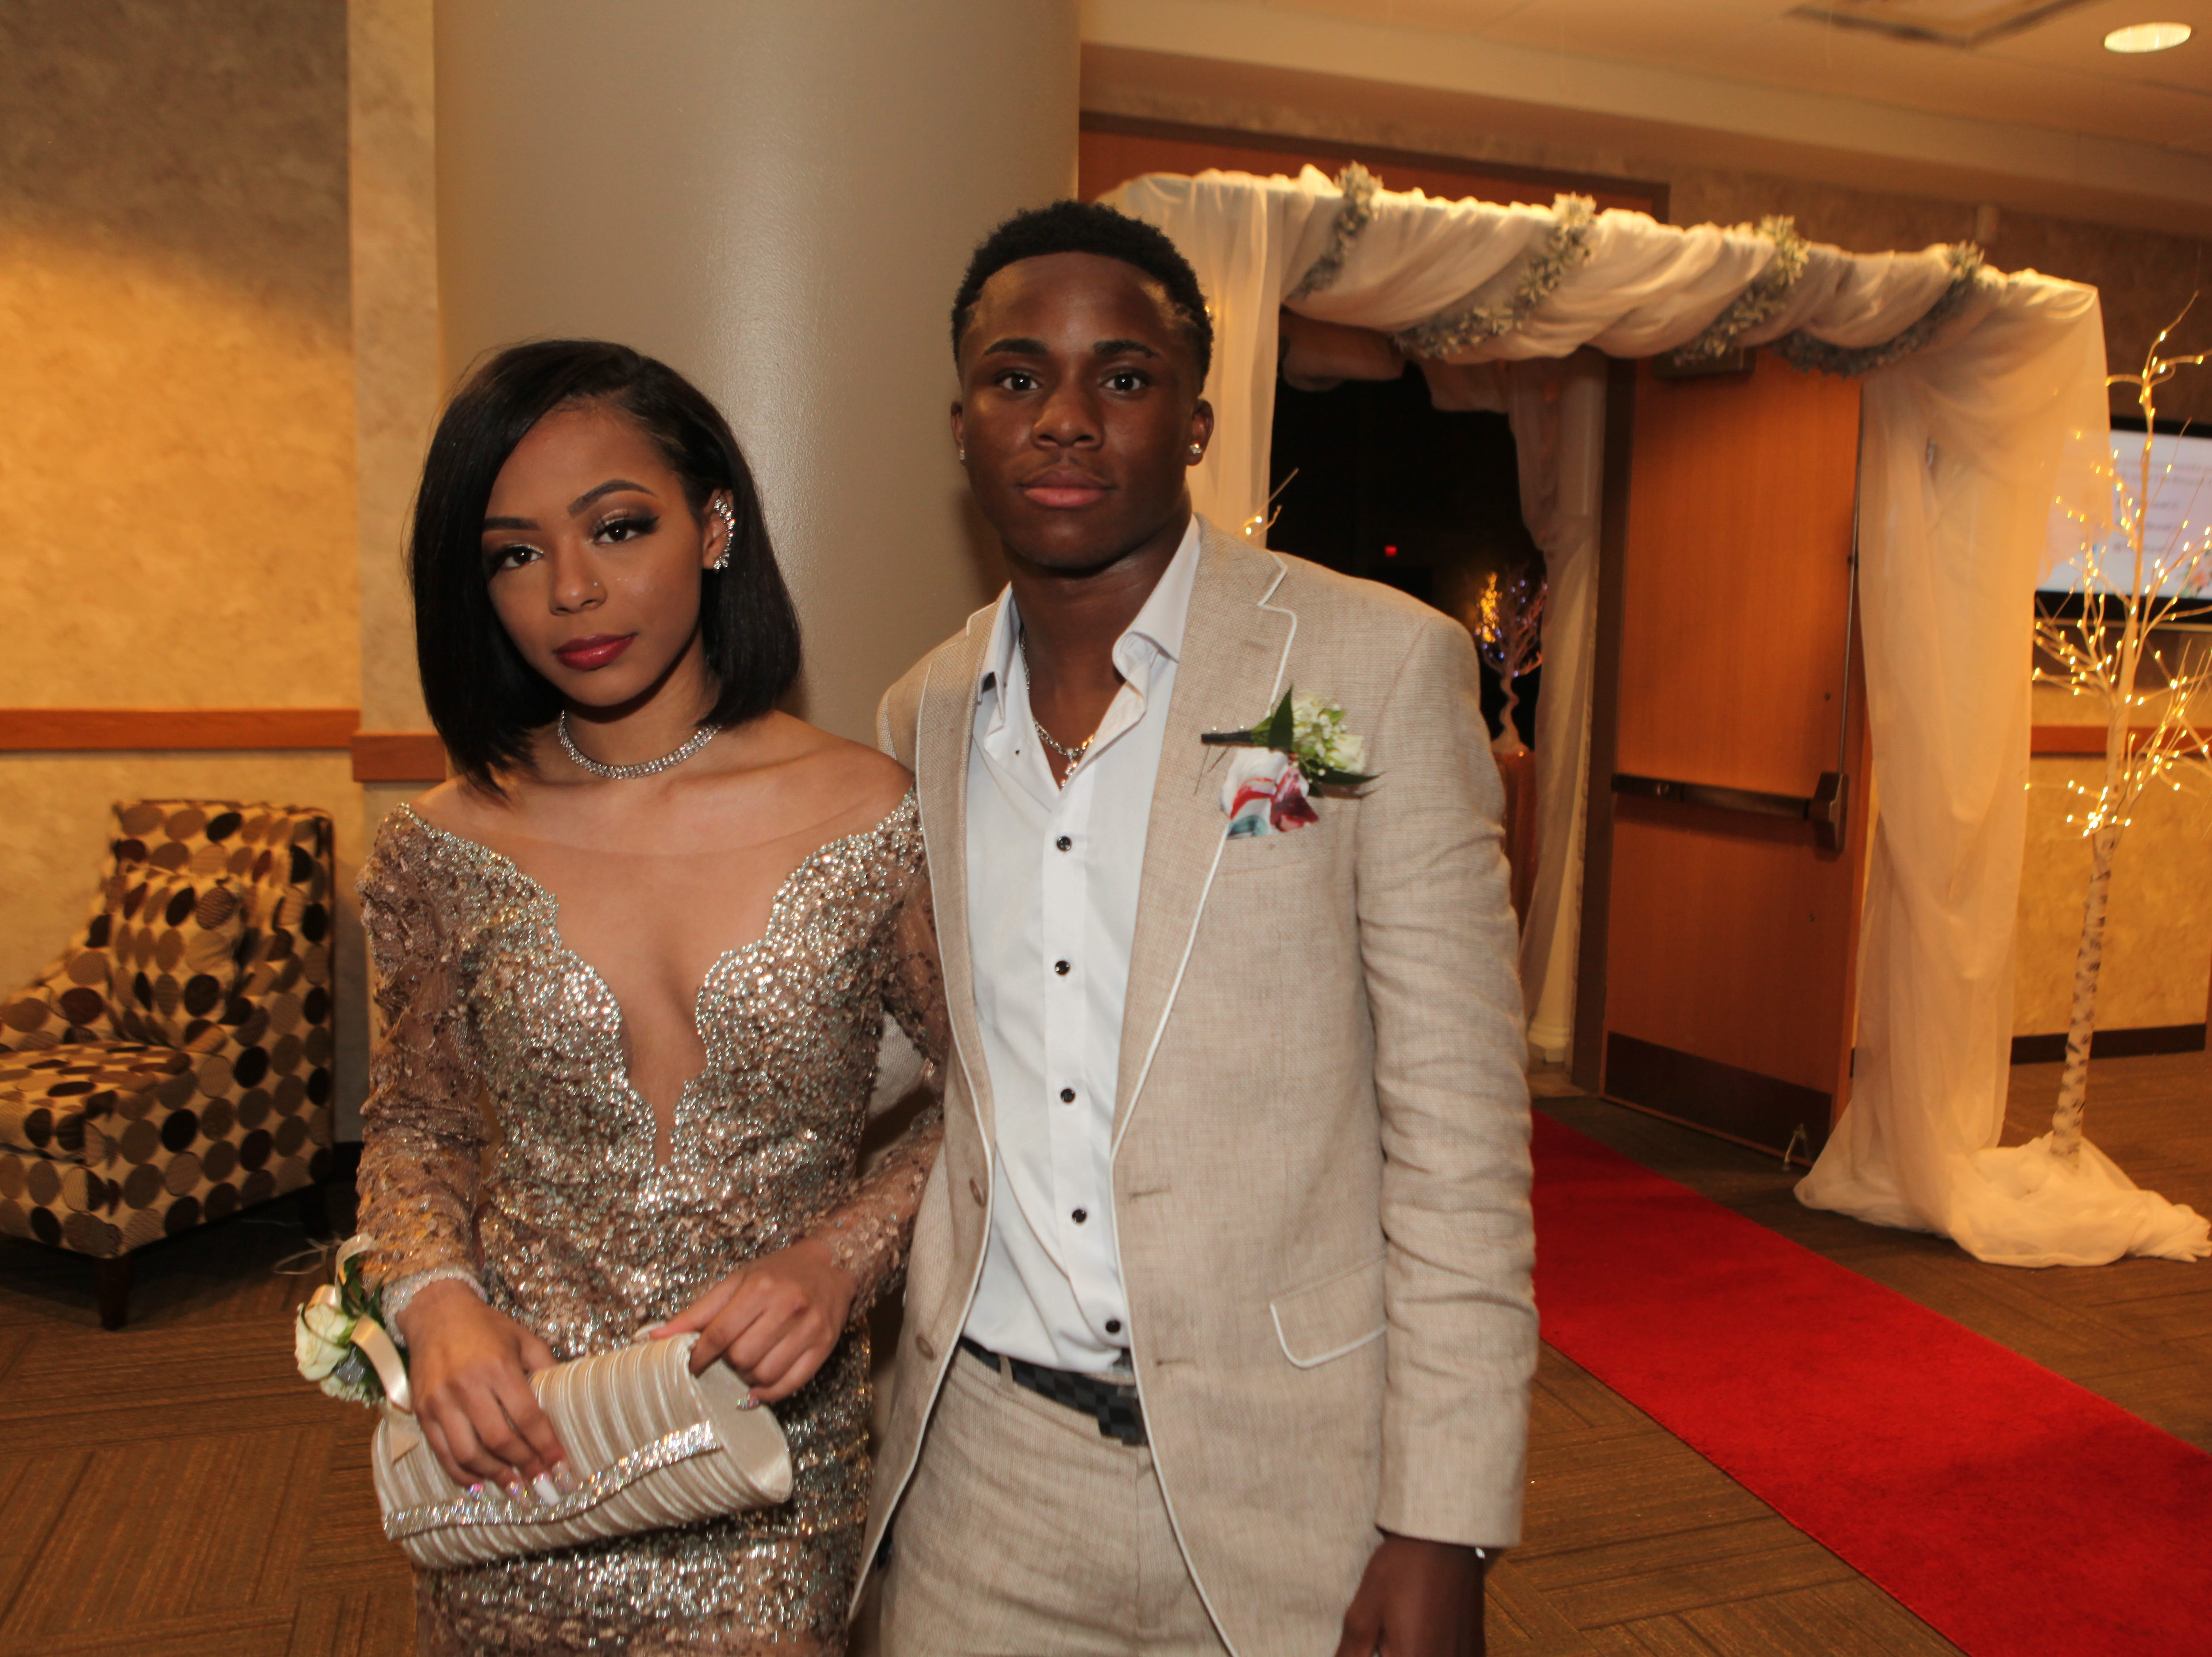 Kayla Cook and Isaiah Thomas at West Creek High School's 2019 prom 2019, Saturday, May 4.